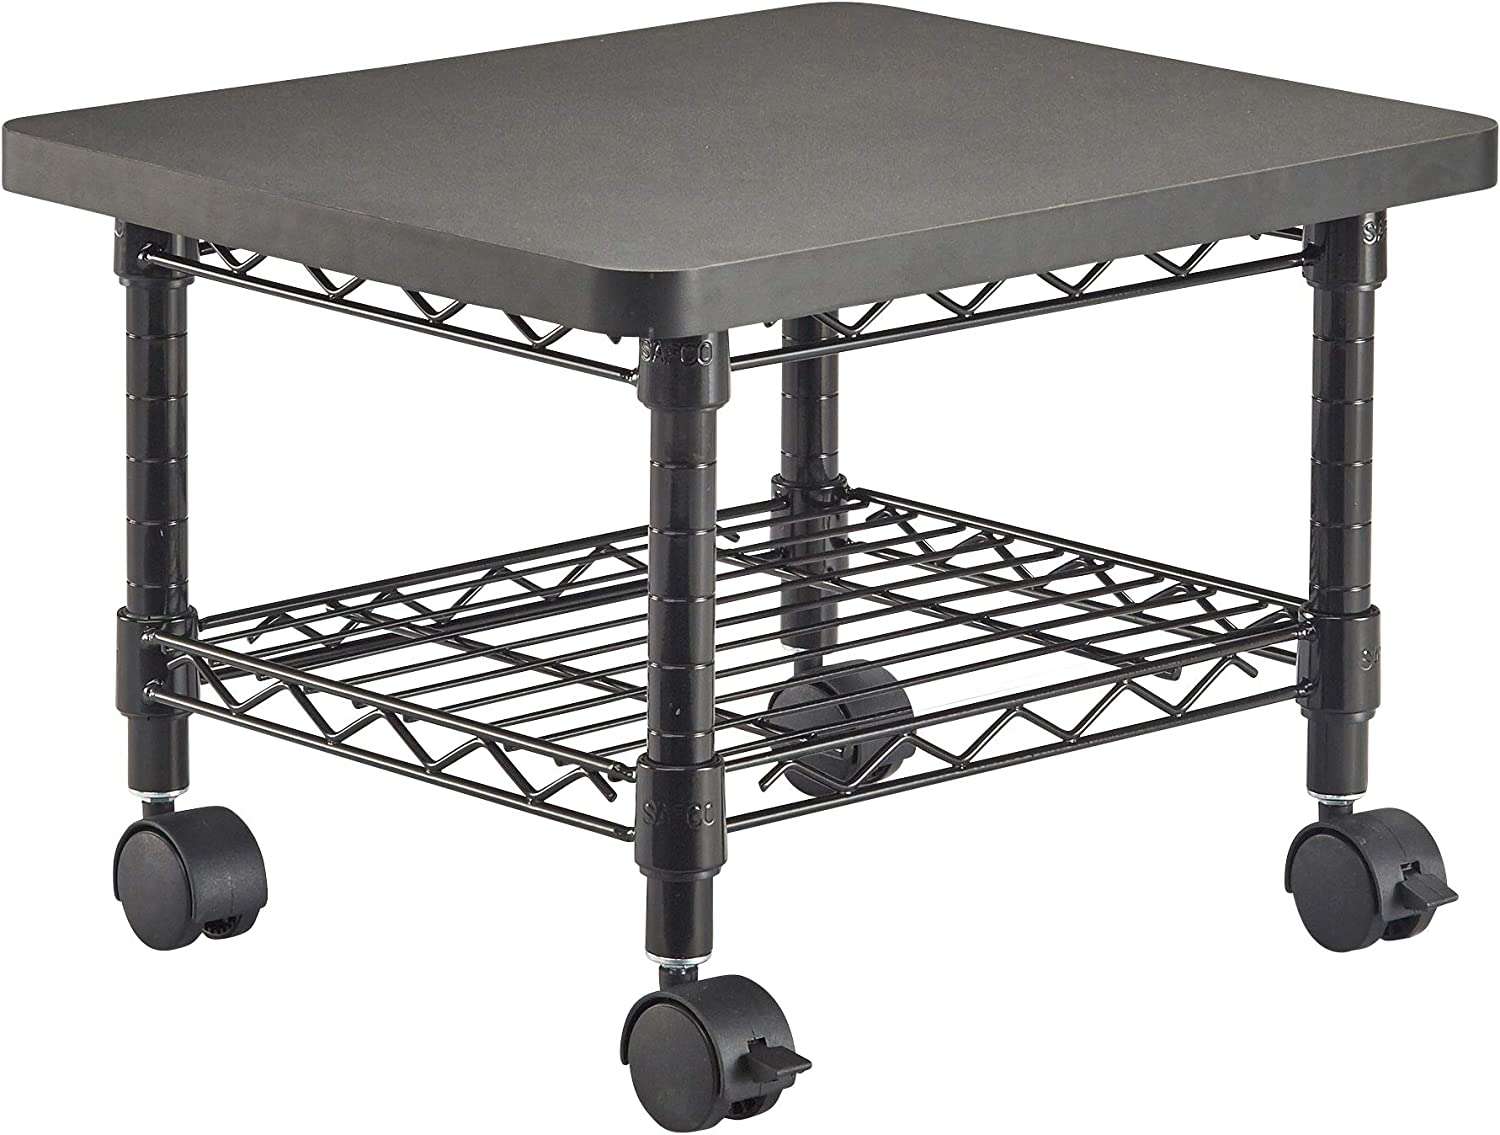 Safco Products Under Desk Printer/Fax Stand , Black Powder Coat Finish, Swivel Wheels for Mobility: Furniture & Decor